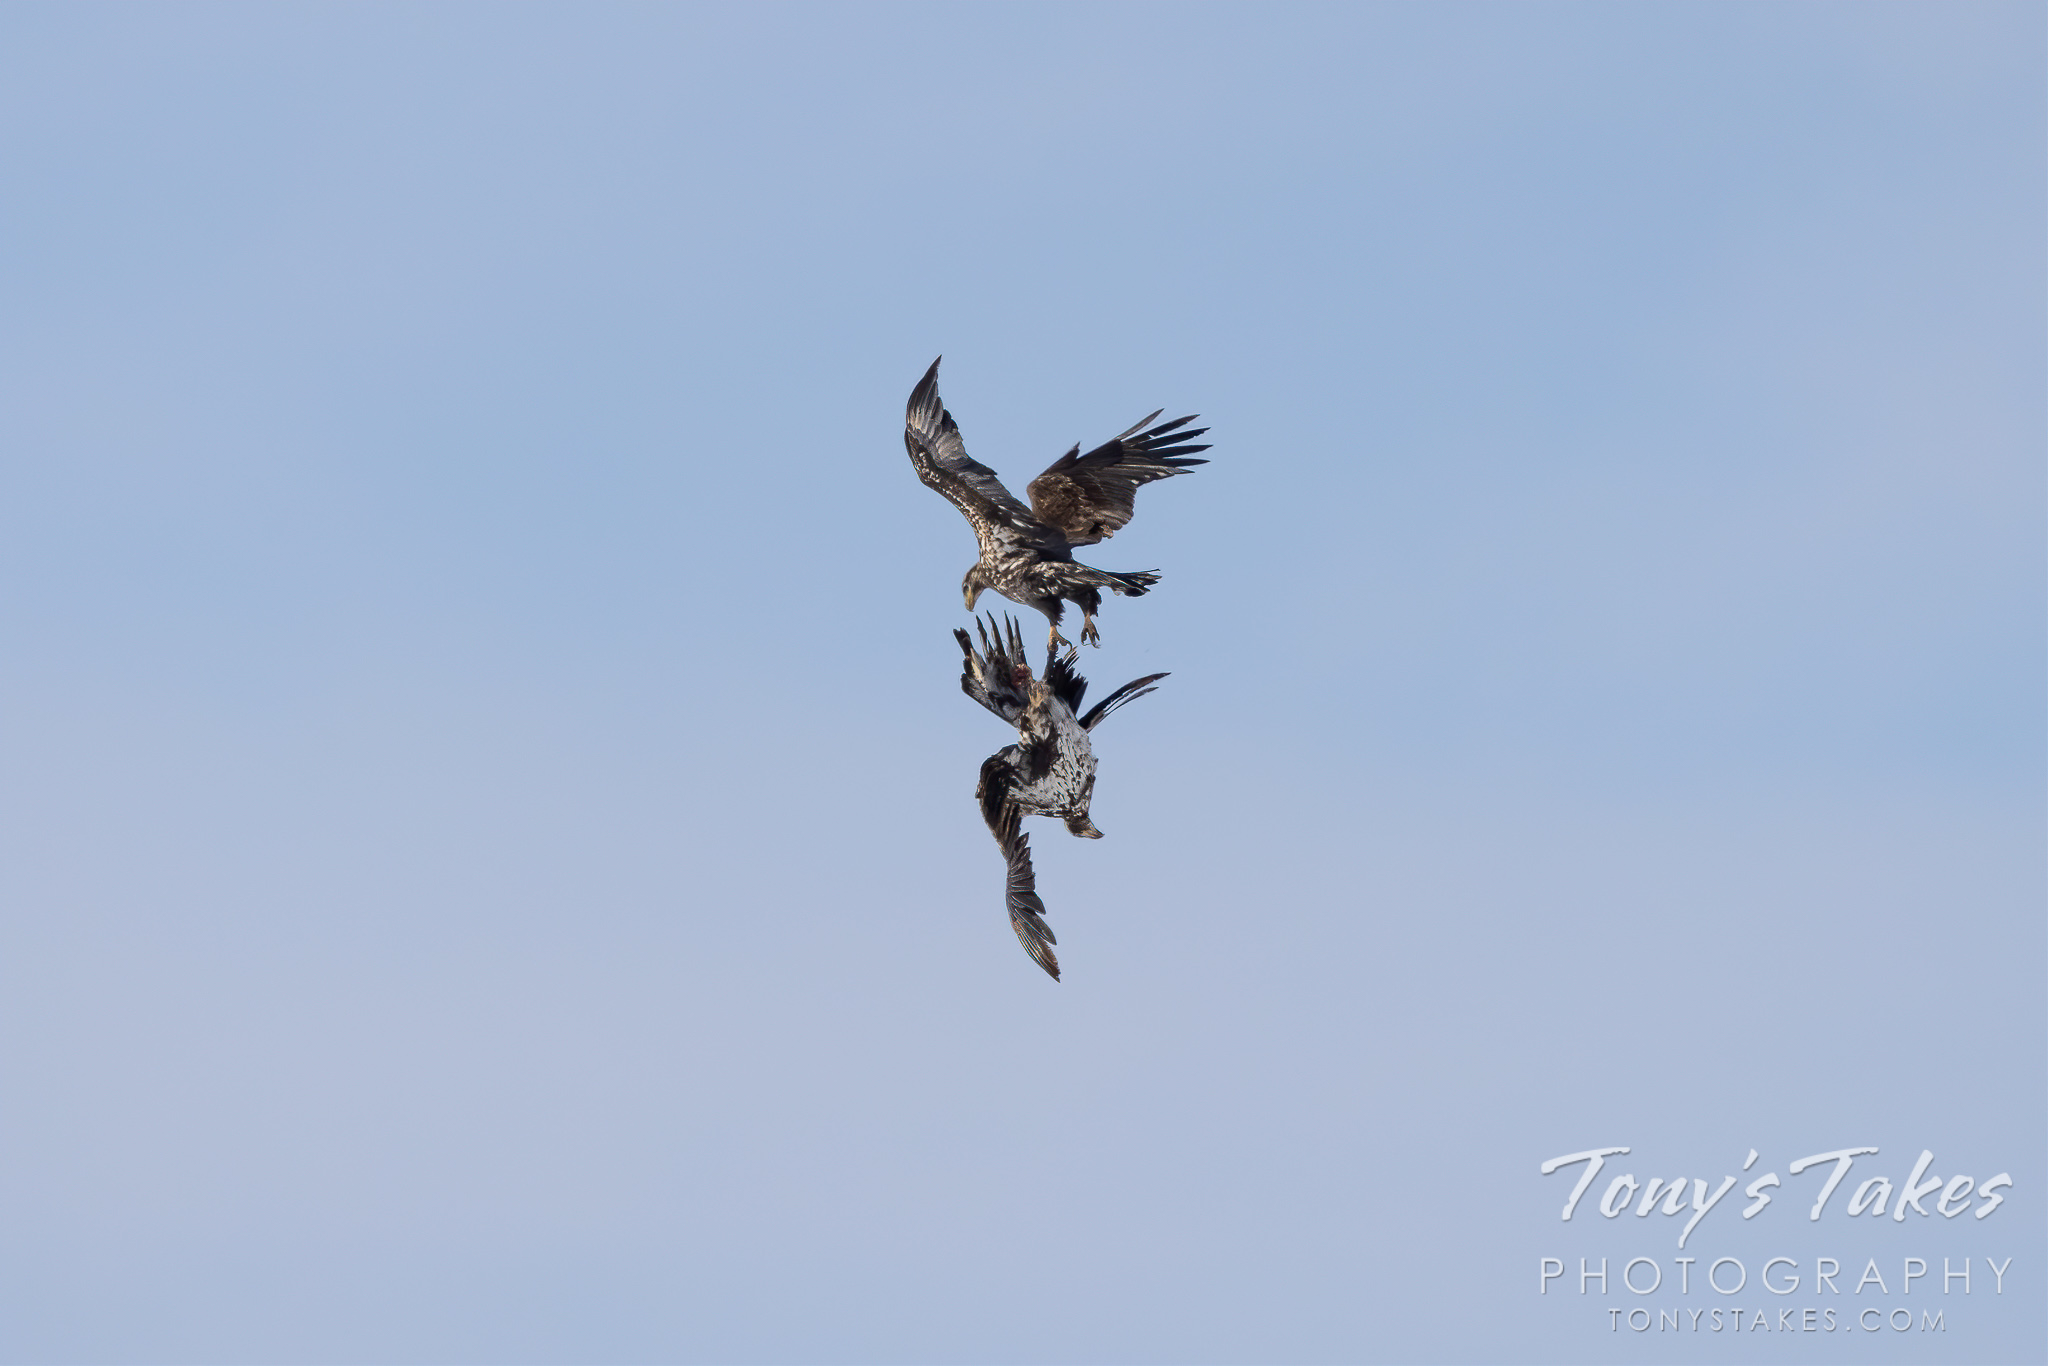 Young bald eagles battle in the sky